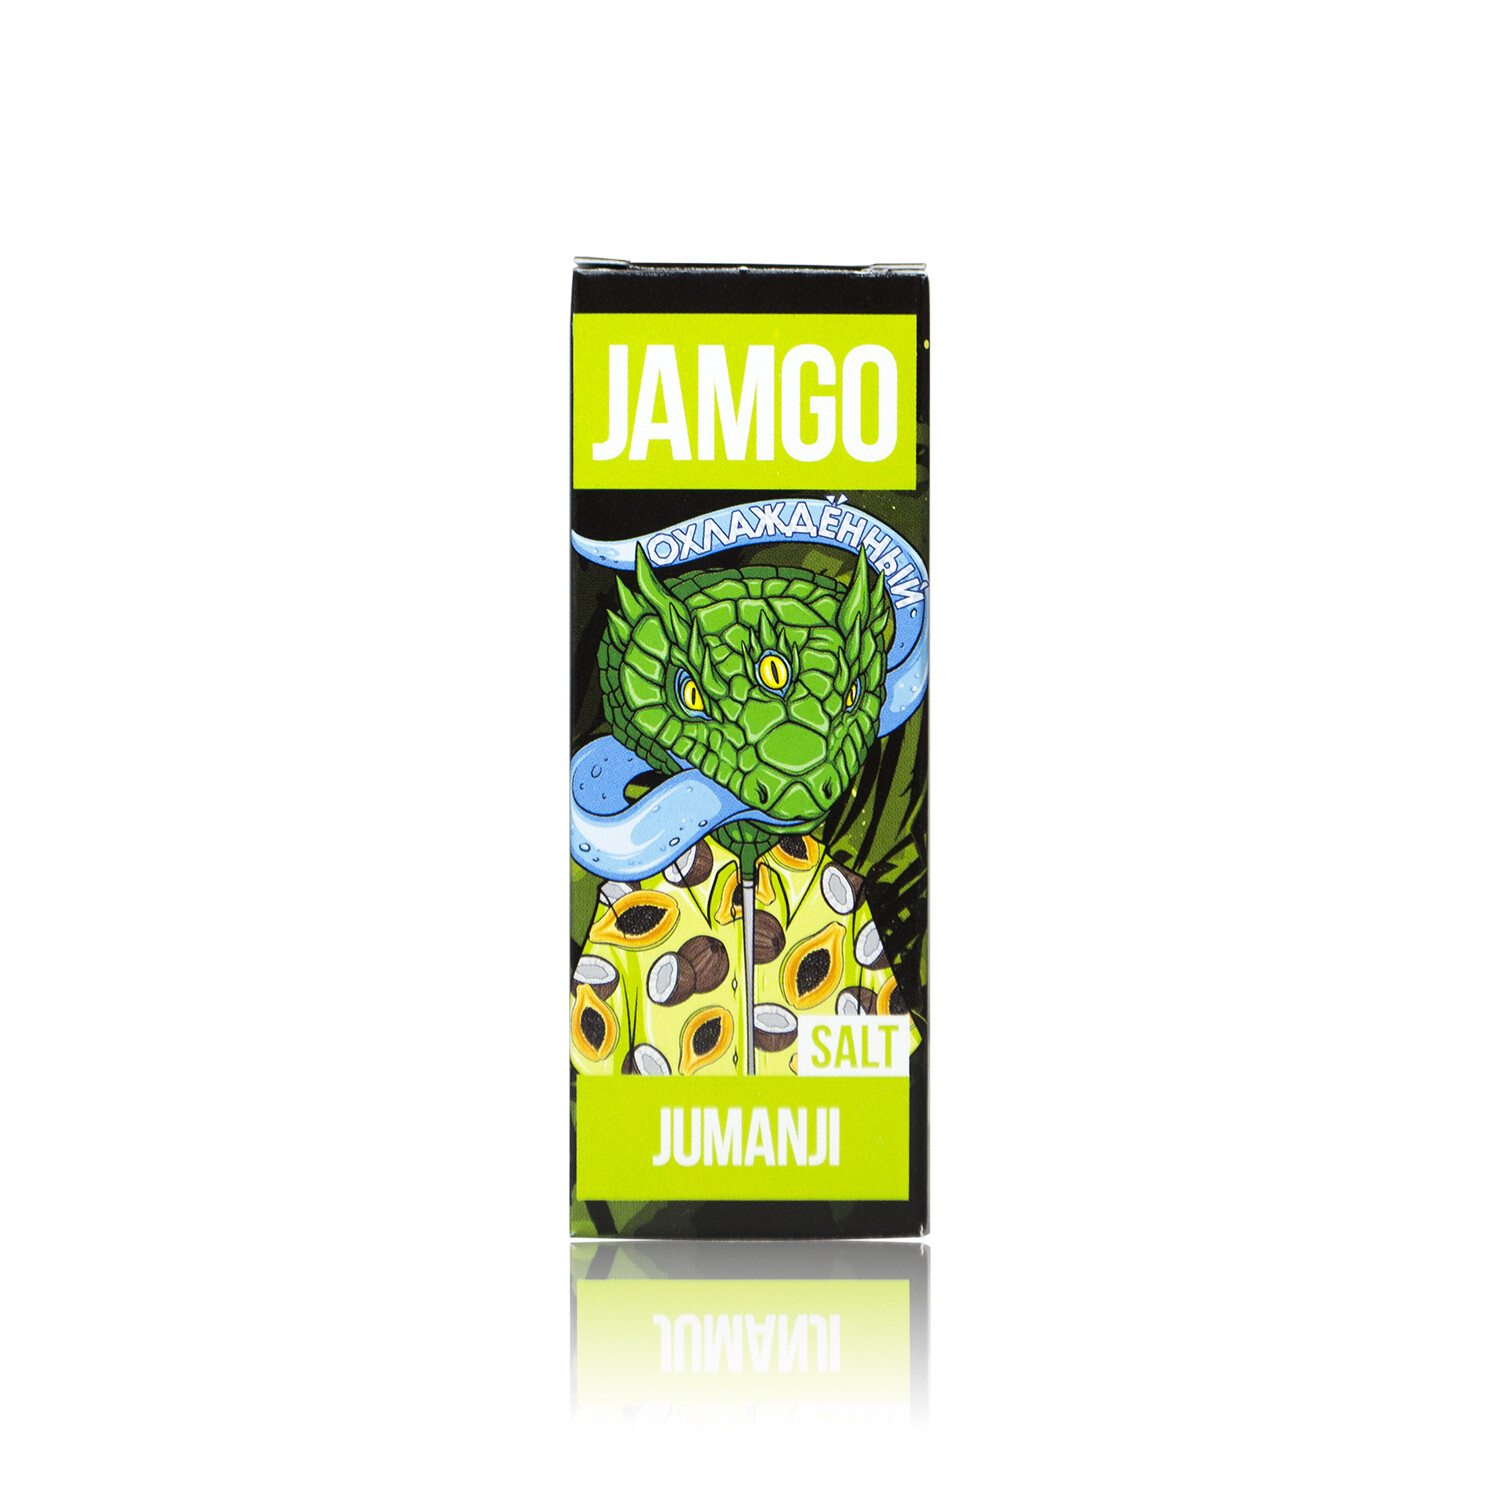 JAMGO SALT: JUMANJI 30ML 20MG